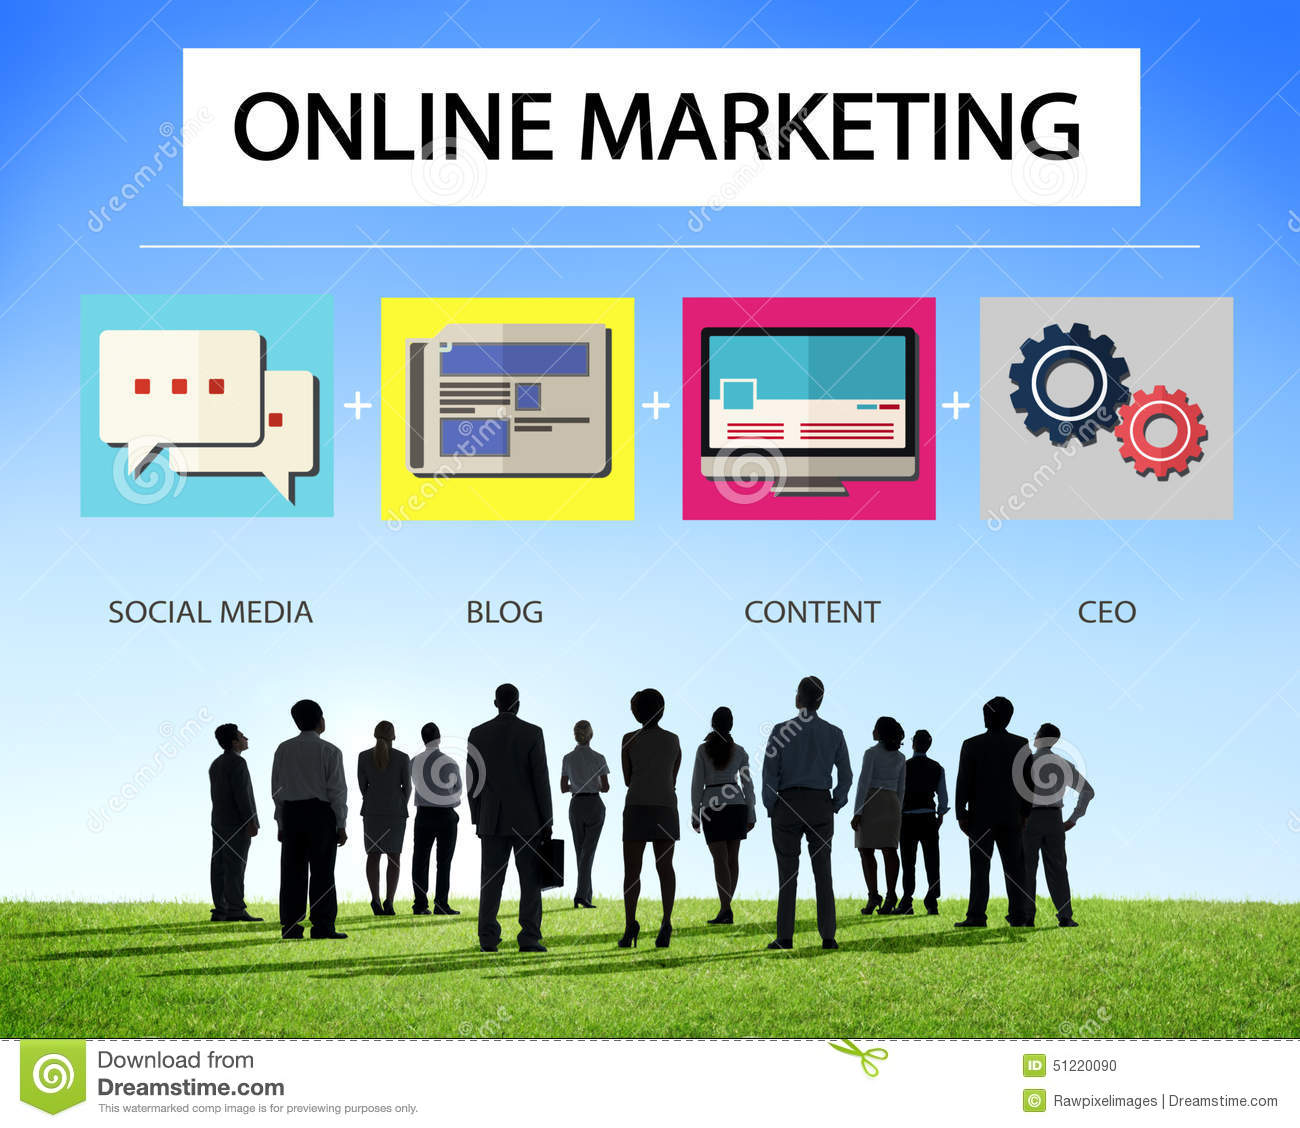 internet marketing strategy concepts and definitions Internet marketing strategy provides consistent direction for an organisation's e-marketing activities, defined by kotler (2007, p493), is becoming one of the mostly rapid increasing technologies of direct marketing and widespread use of the internet and has a variety of impacts on both buyers and marketers.